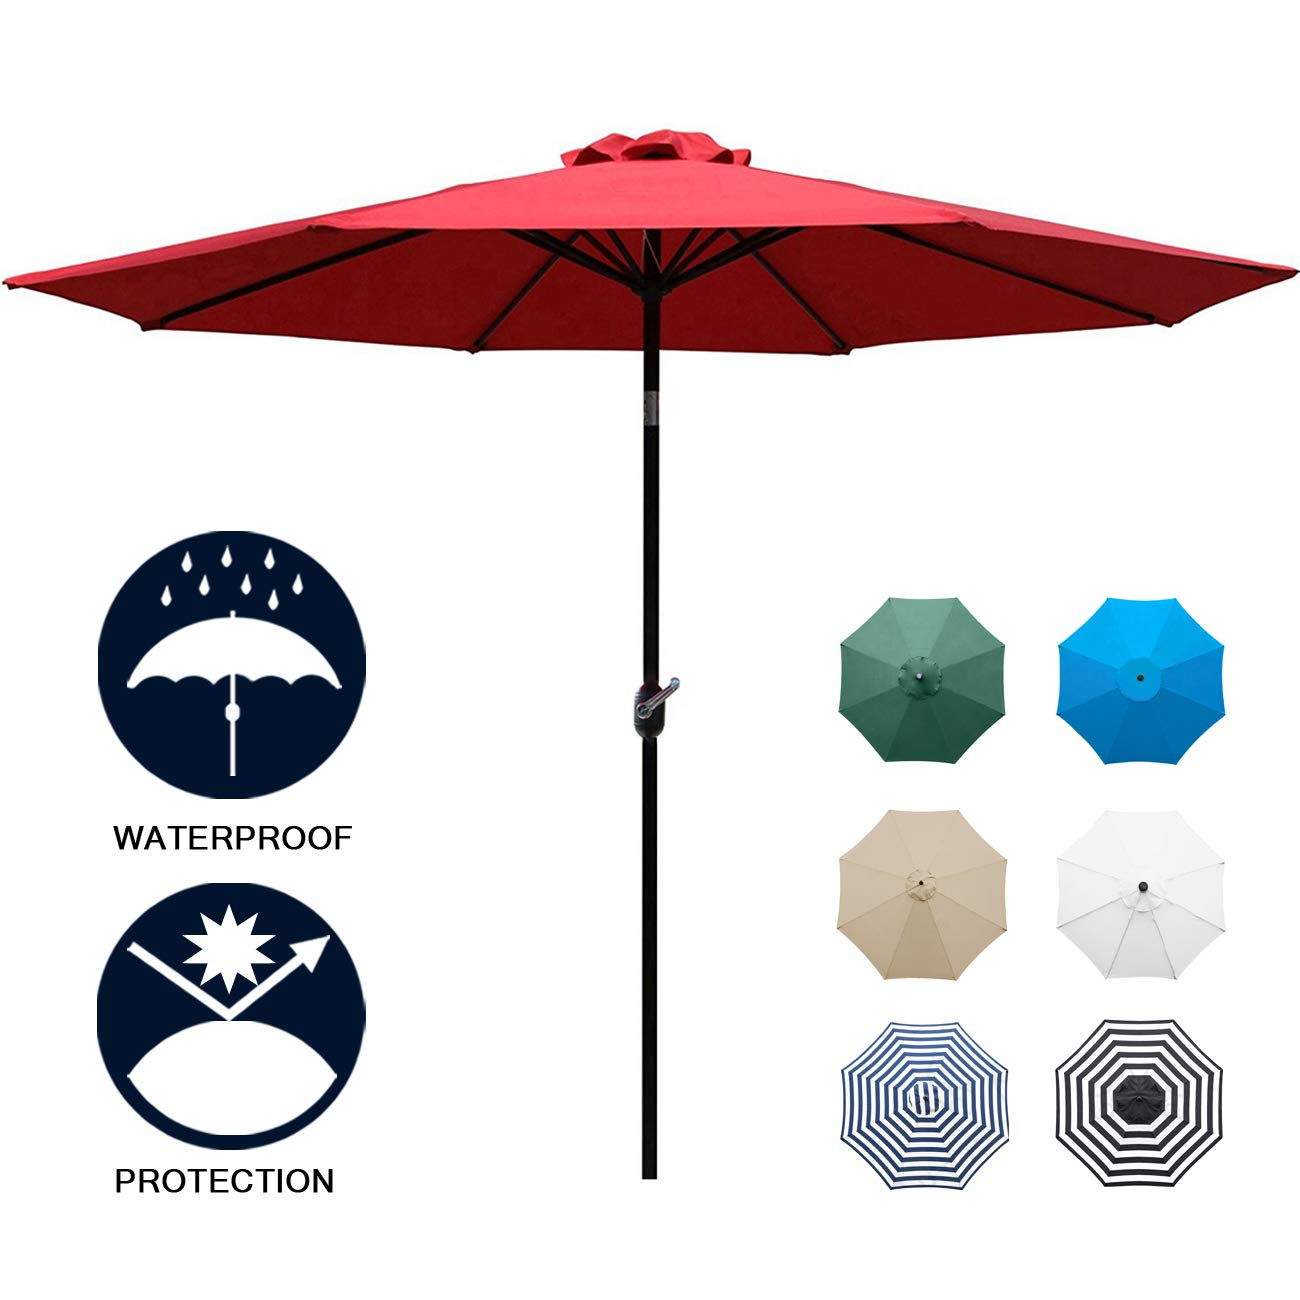 Sunnyglade 9' Patio Umbrella Outdoor Table Umbrella with 8 Sturdy Ribs (Red) by Sunnyglade